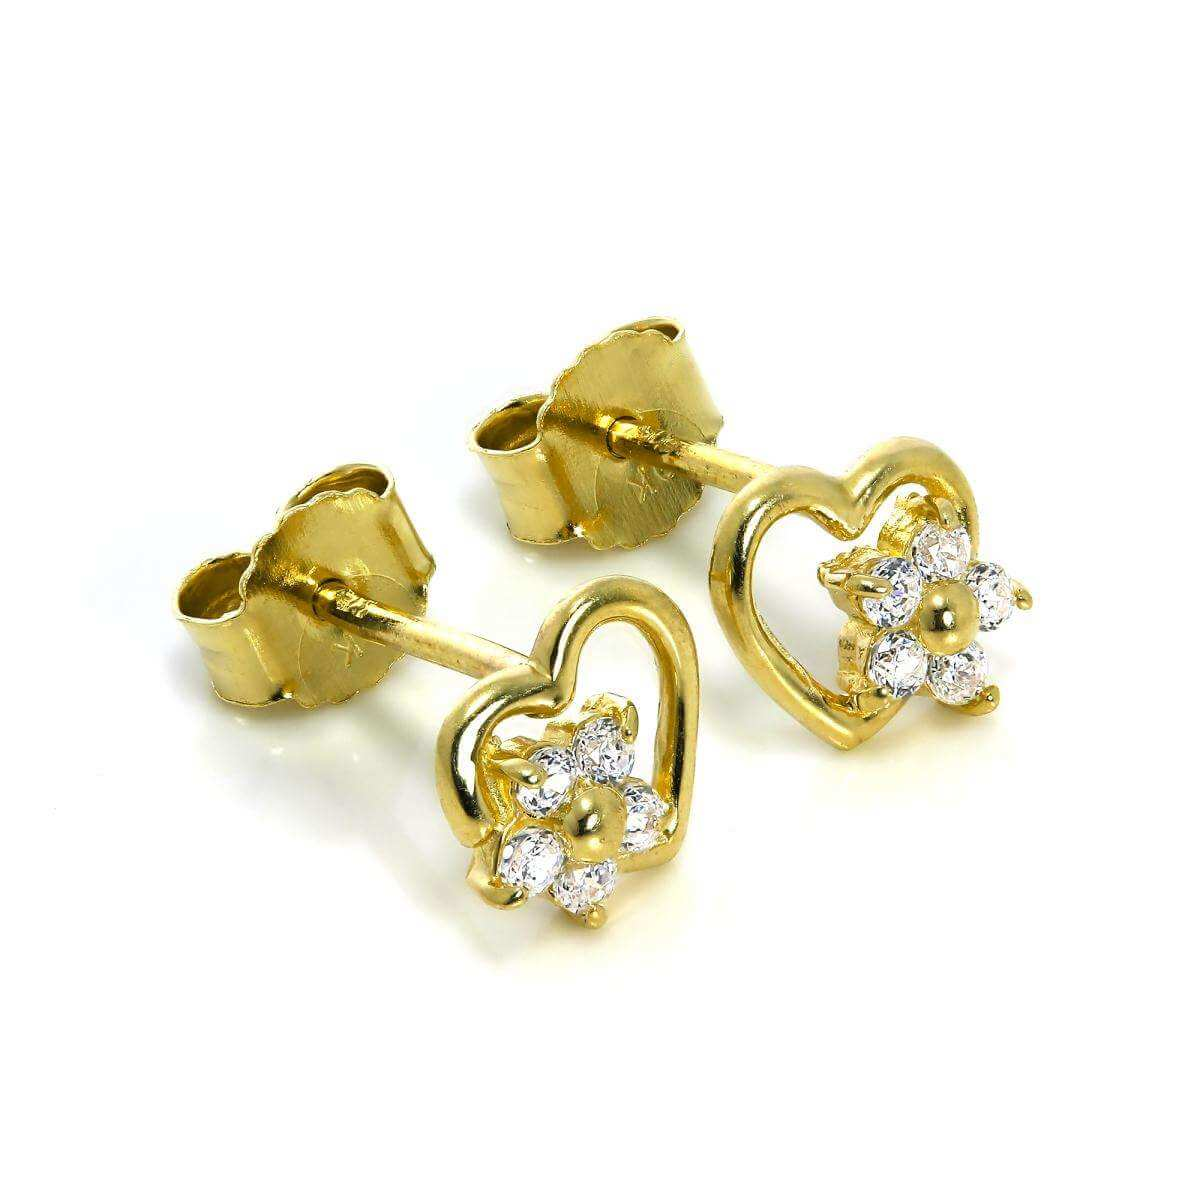 9ct Gold Open Heart & CZ Crystal Flower Stud Earrings